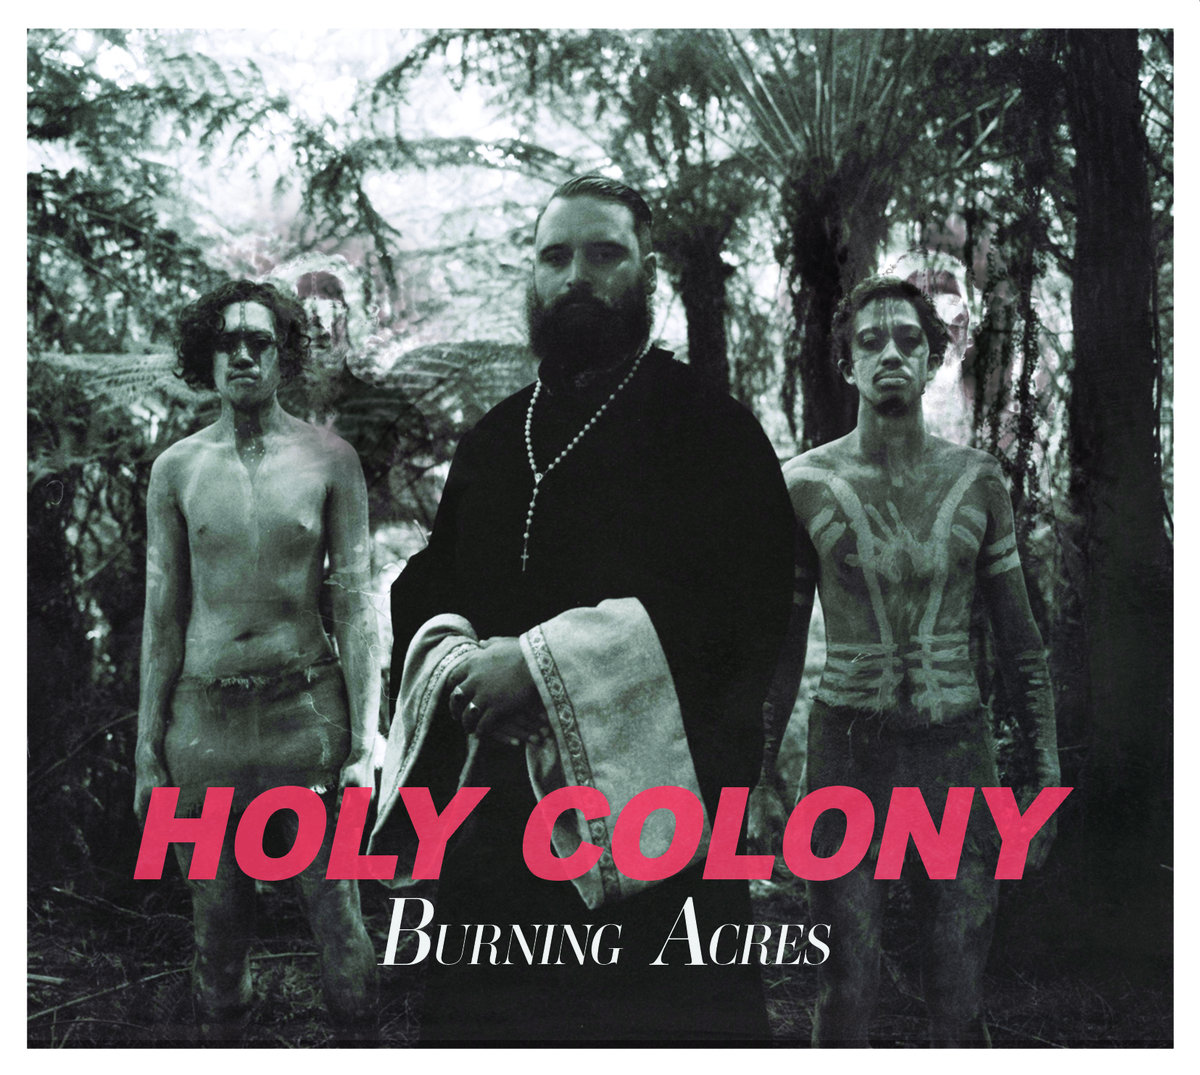 TROY KINGI - HOLY COLONY BURNING ACRES album artwork